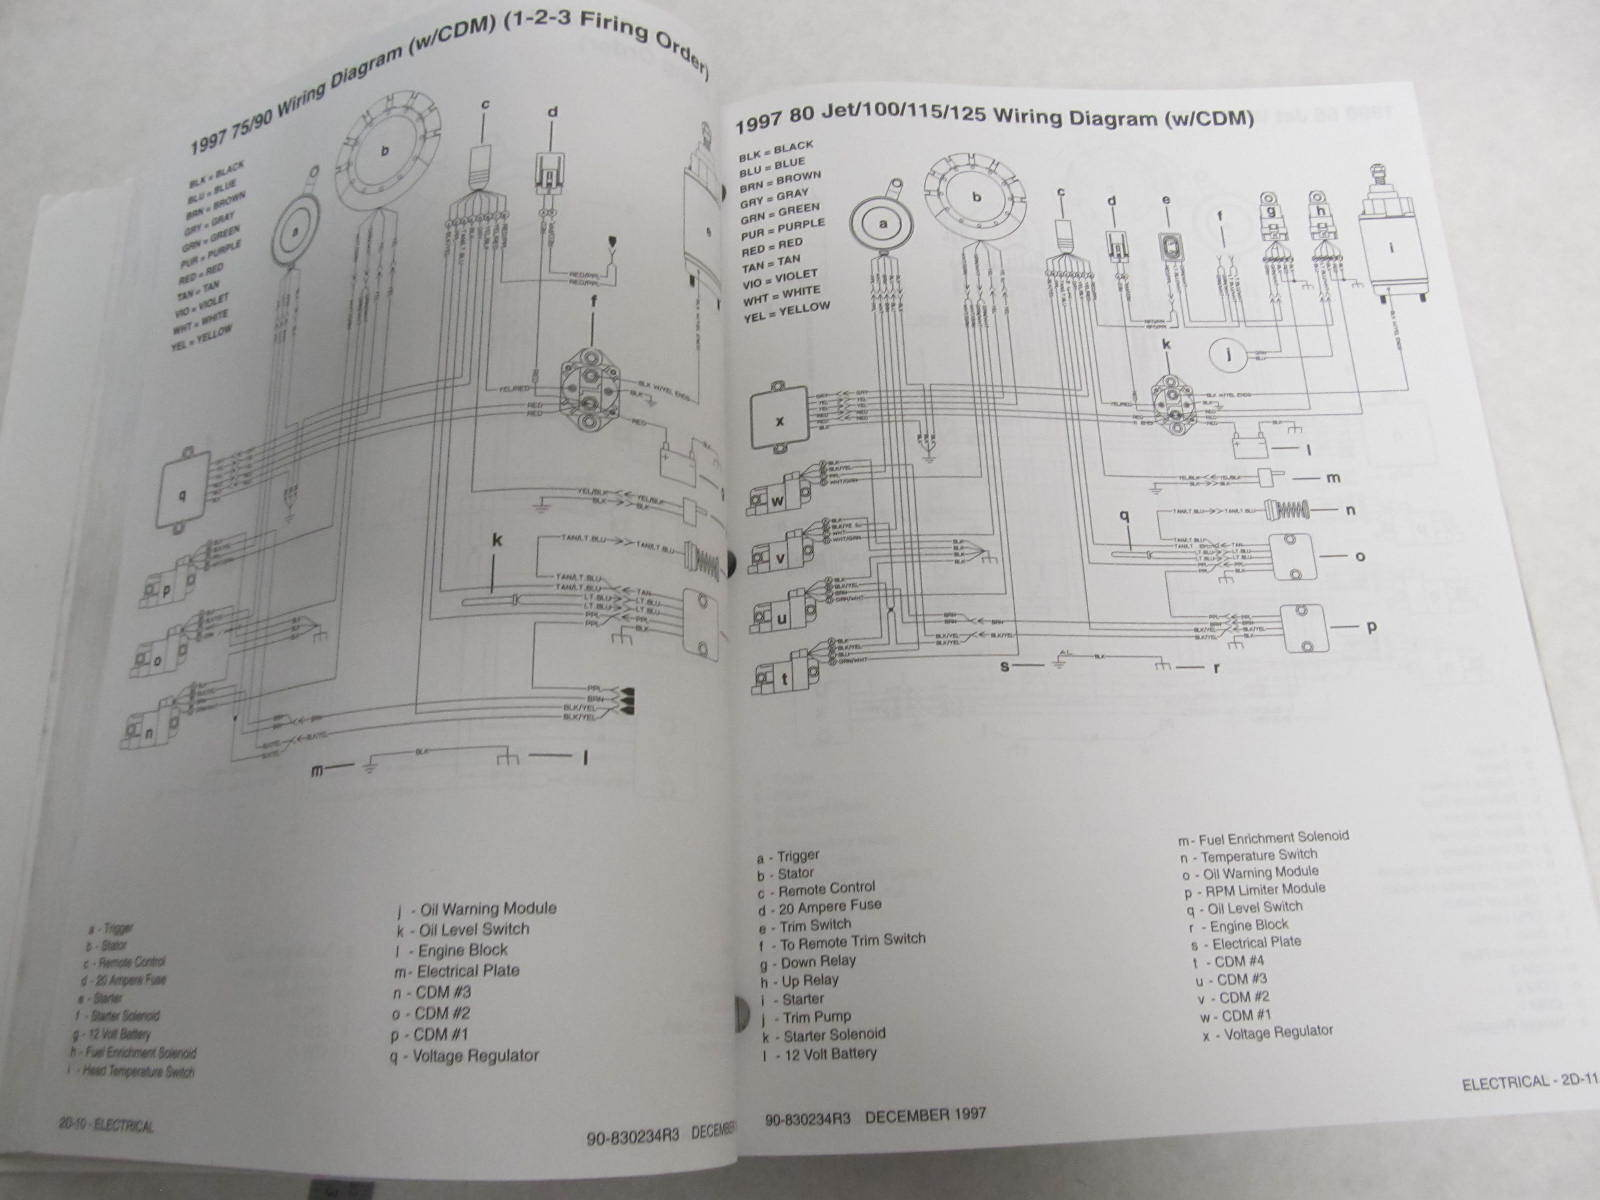 Mercury 2 Stroke 90 Wiring Diagram - Wiring Diagrams on friendship bracelet diagrams, sincgars radio configurations diagrams, honda motorcycle repair diagrams, electronic circuit diagrams, pinout diagrams, switch diagrams, troubleshooting diagrams, internet of things diagrams, engine diagrams, led circuit diagrams, hvac diagrams, lighting diagrams, gmc fuse box diagrams, series and parallel circuits diagrams, electrical diagrams, battery diagrams, smart car diagrams, motor diagrams, transformer diagrams,